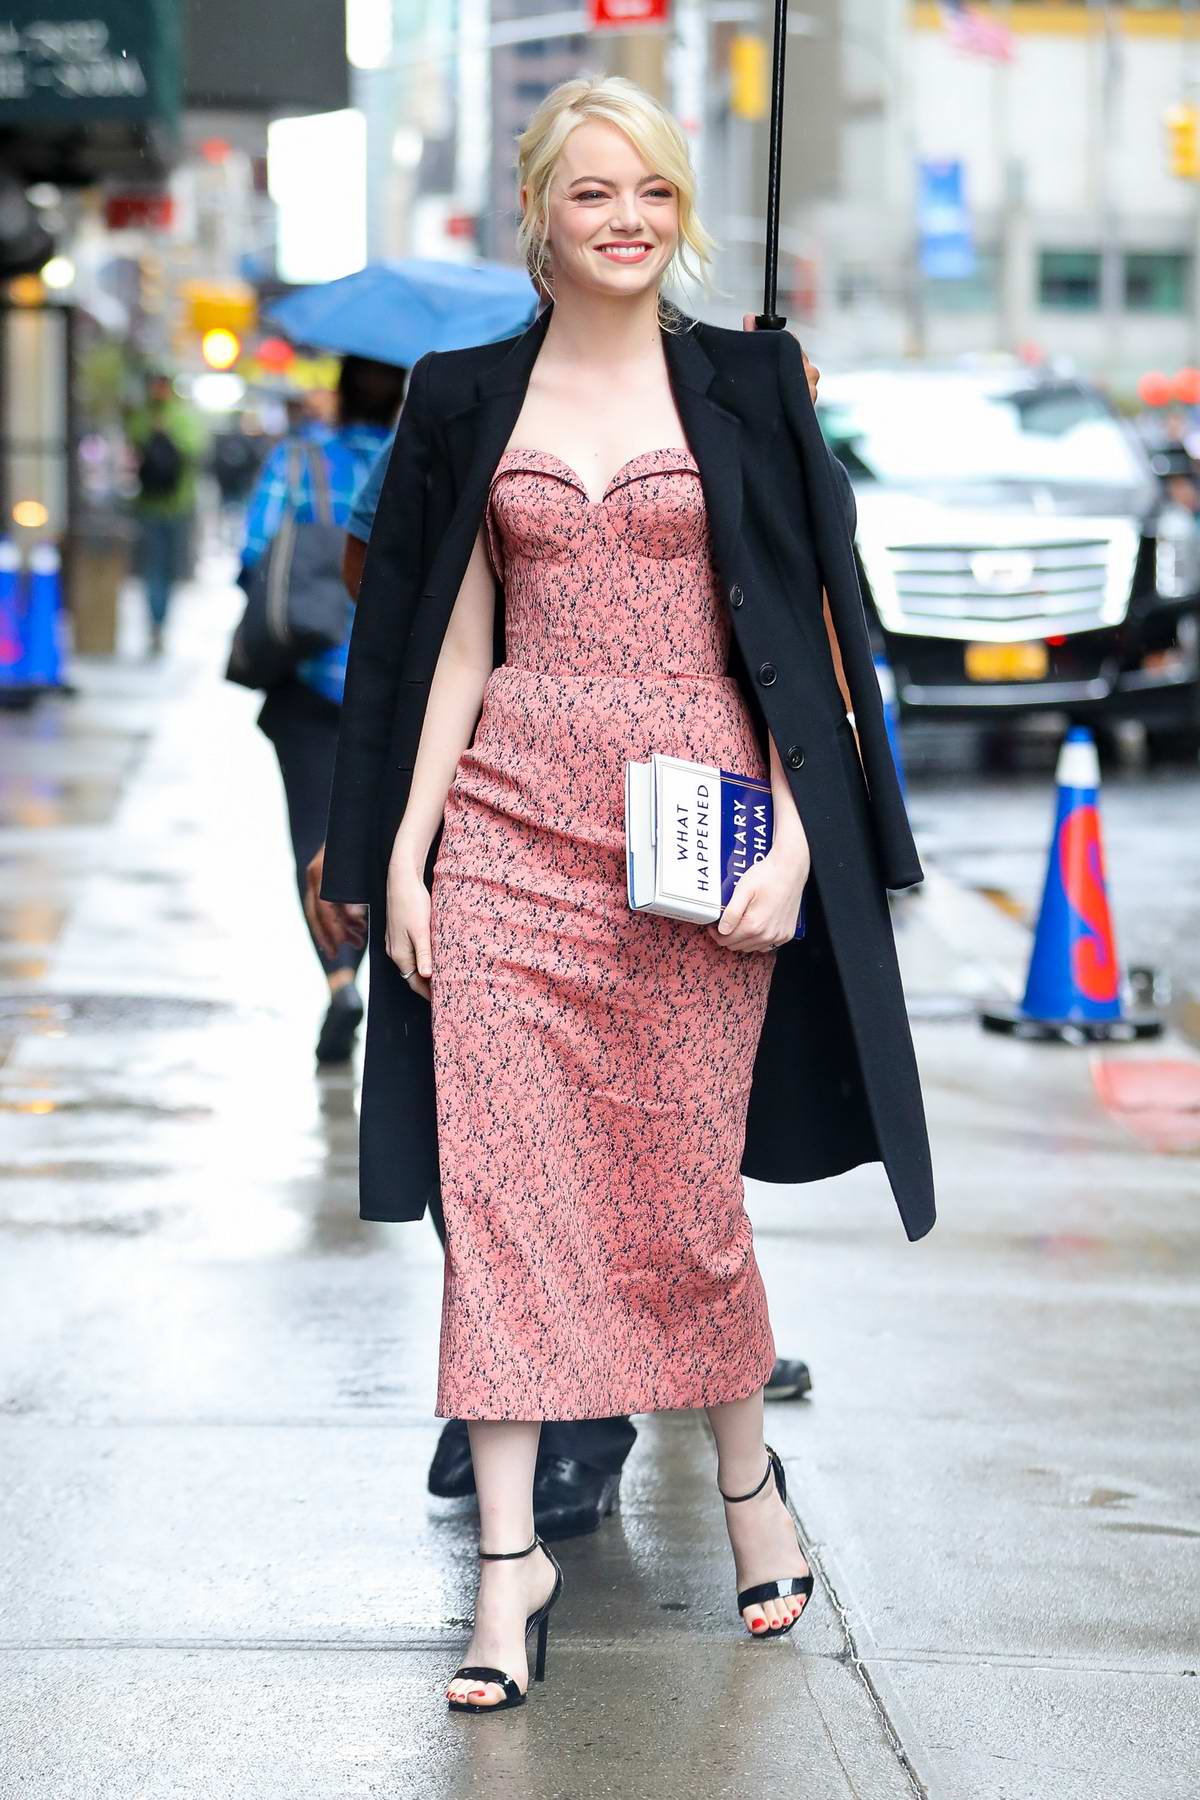 Emma Stone arriving at The Late Show With Stephen Colbert in New York City